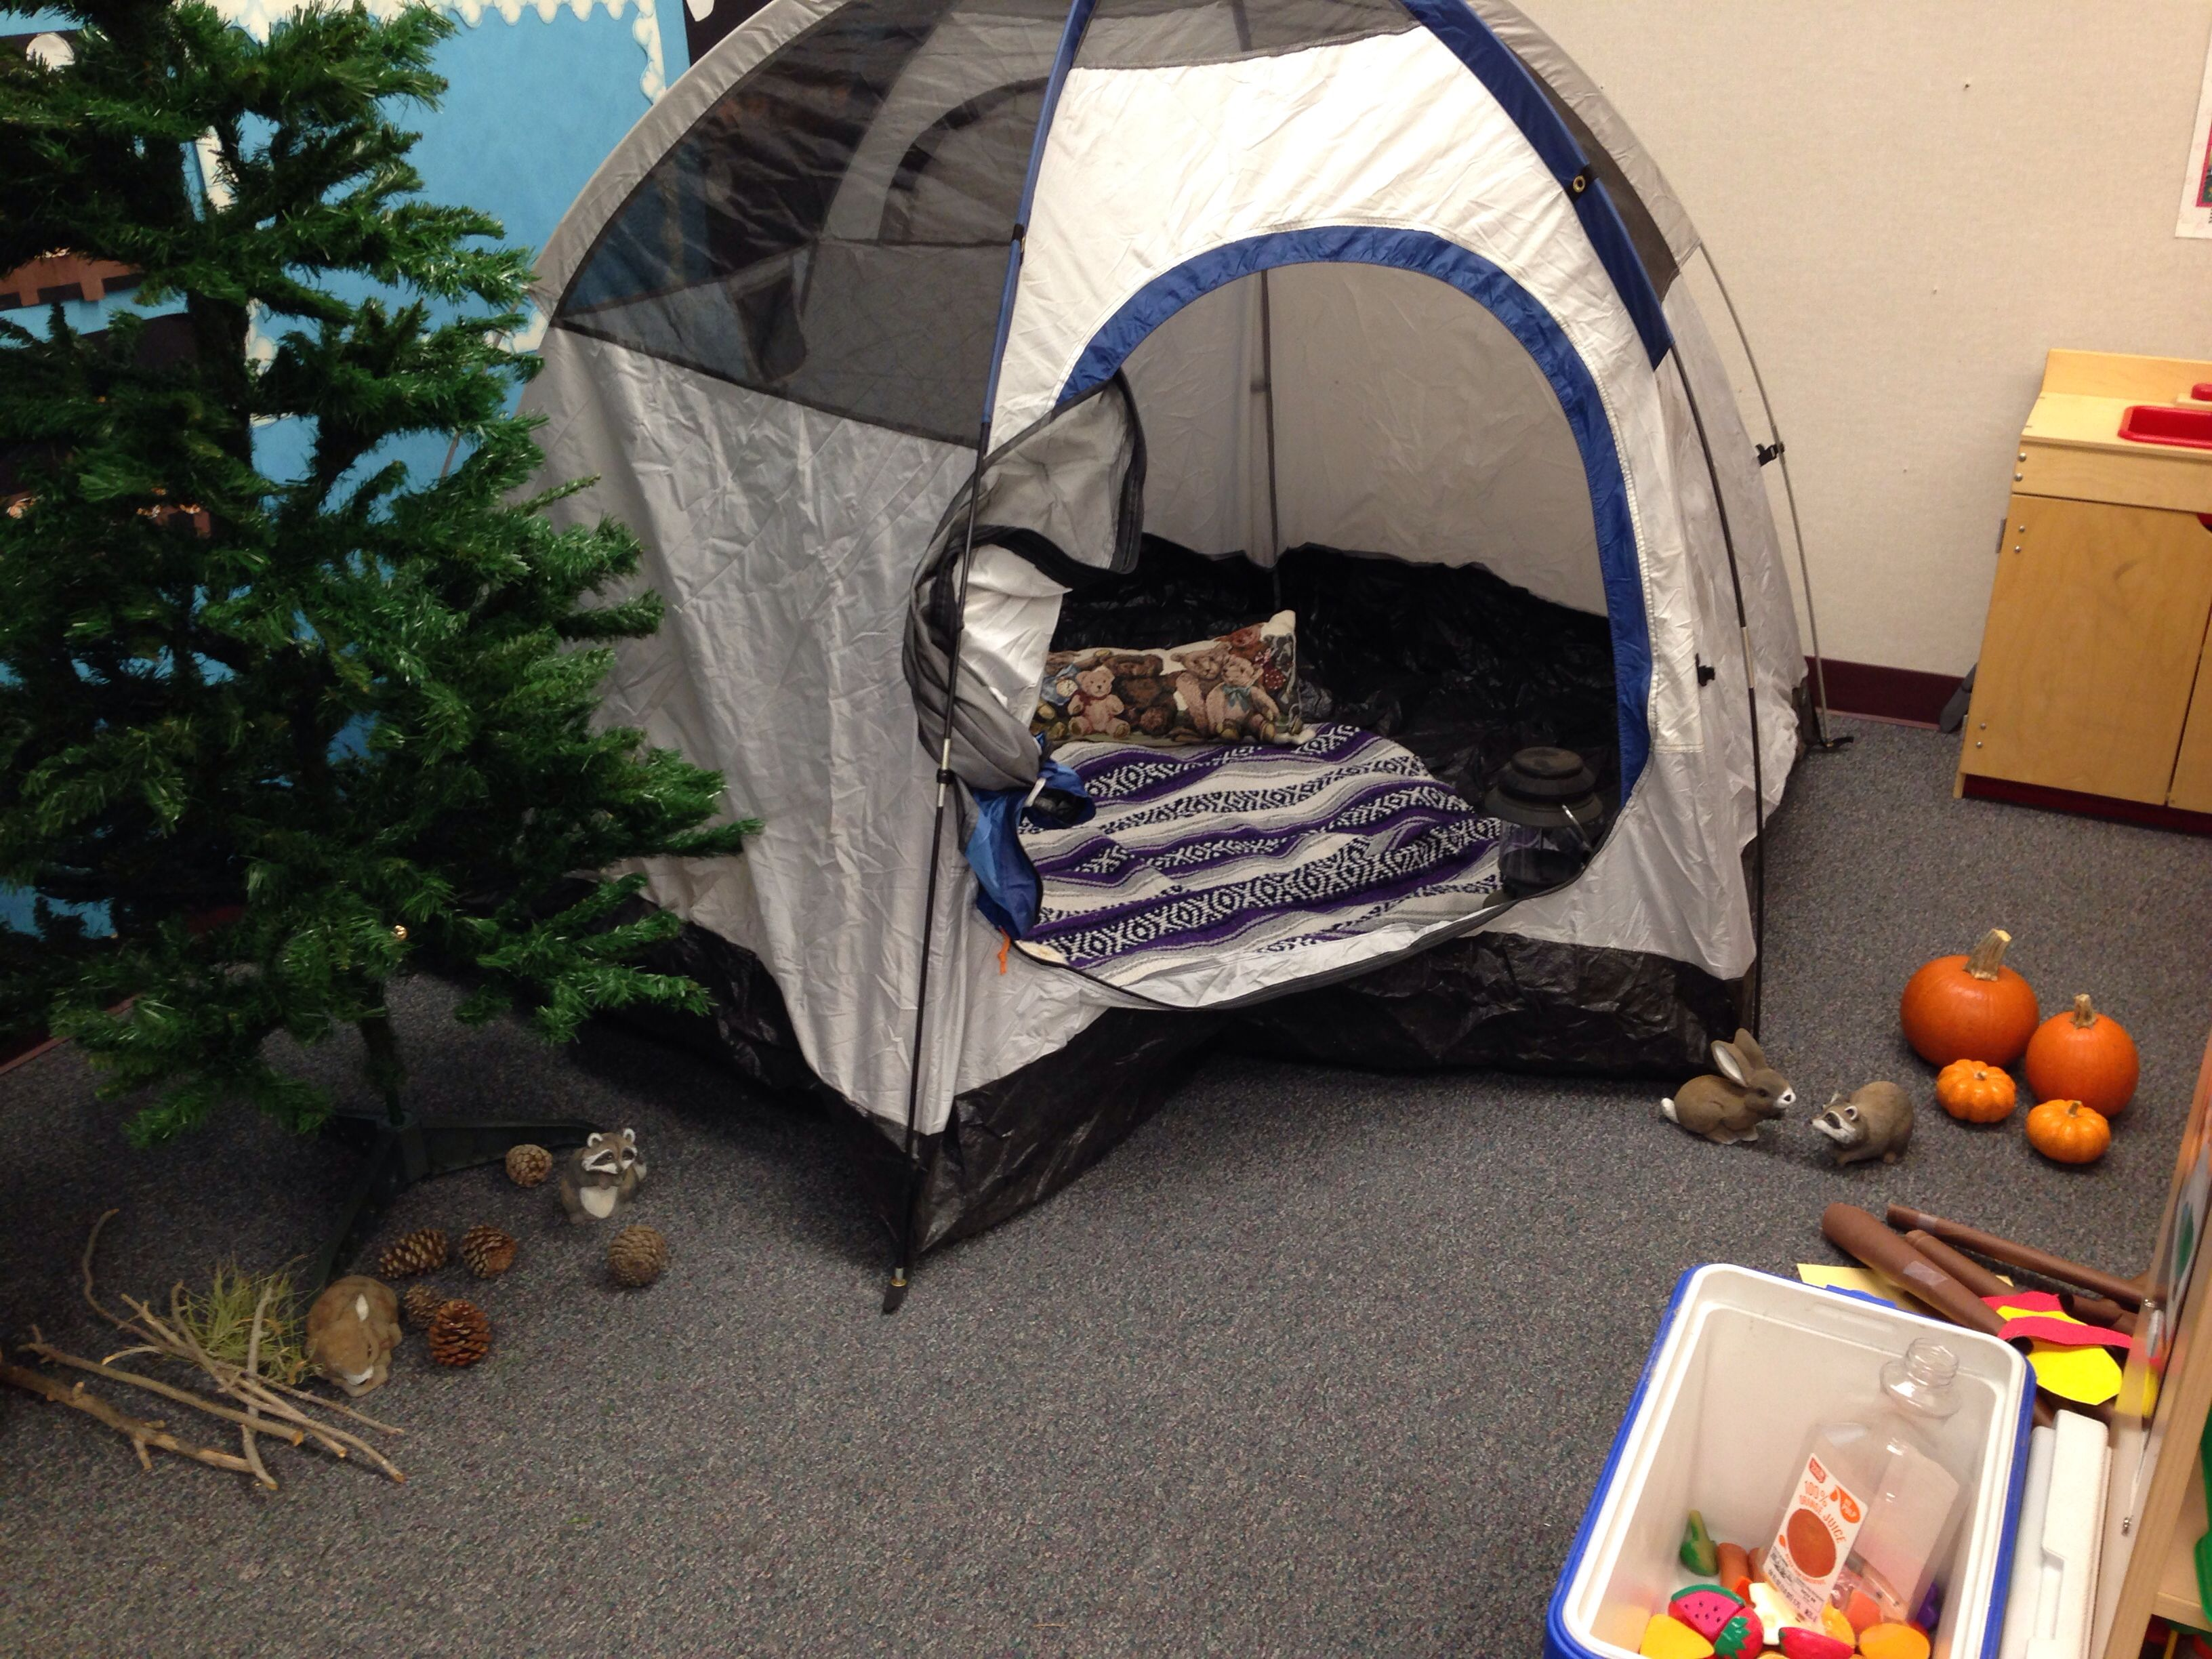 Only in Arizona is a camping dramatic okay appropriate in November!! #preschool #dramaticplay #camping